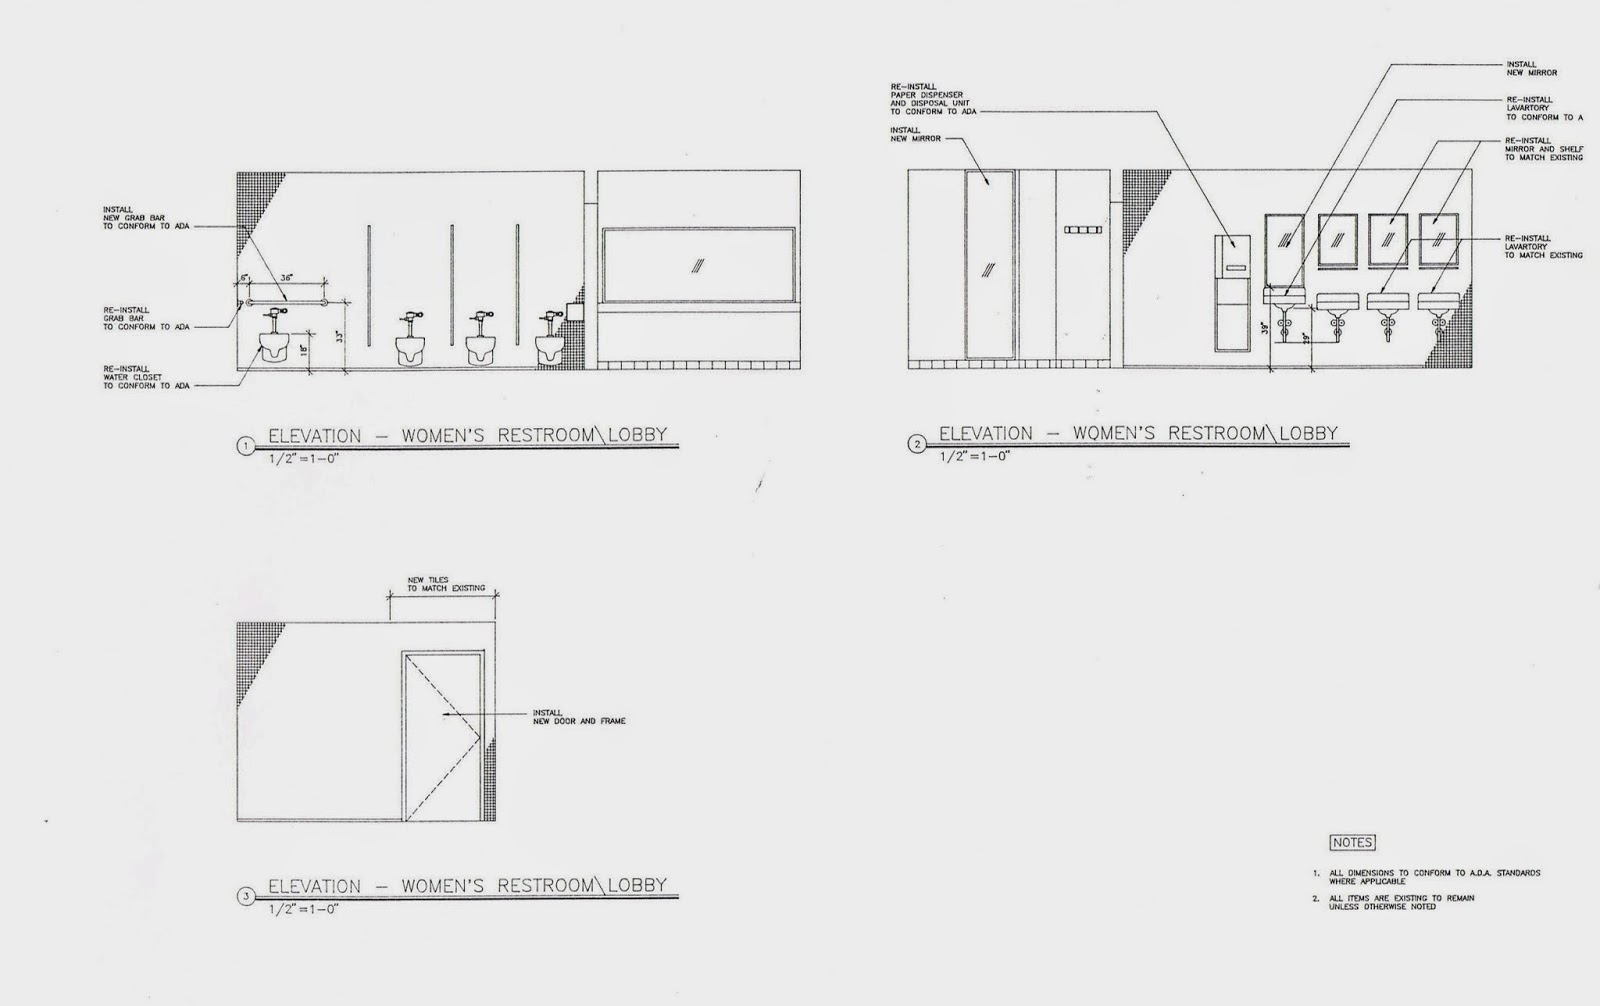 further Symbol Libraries in addition Hwepl08620 as well 3049 Architecture Design Technical Process furthermore Plans. on drafting elevation and plan of residential building